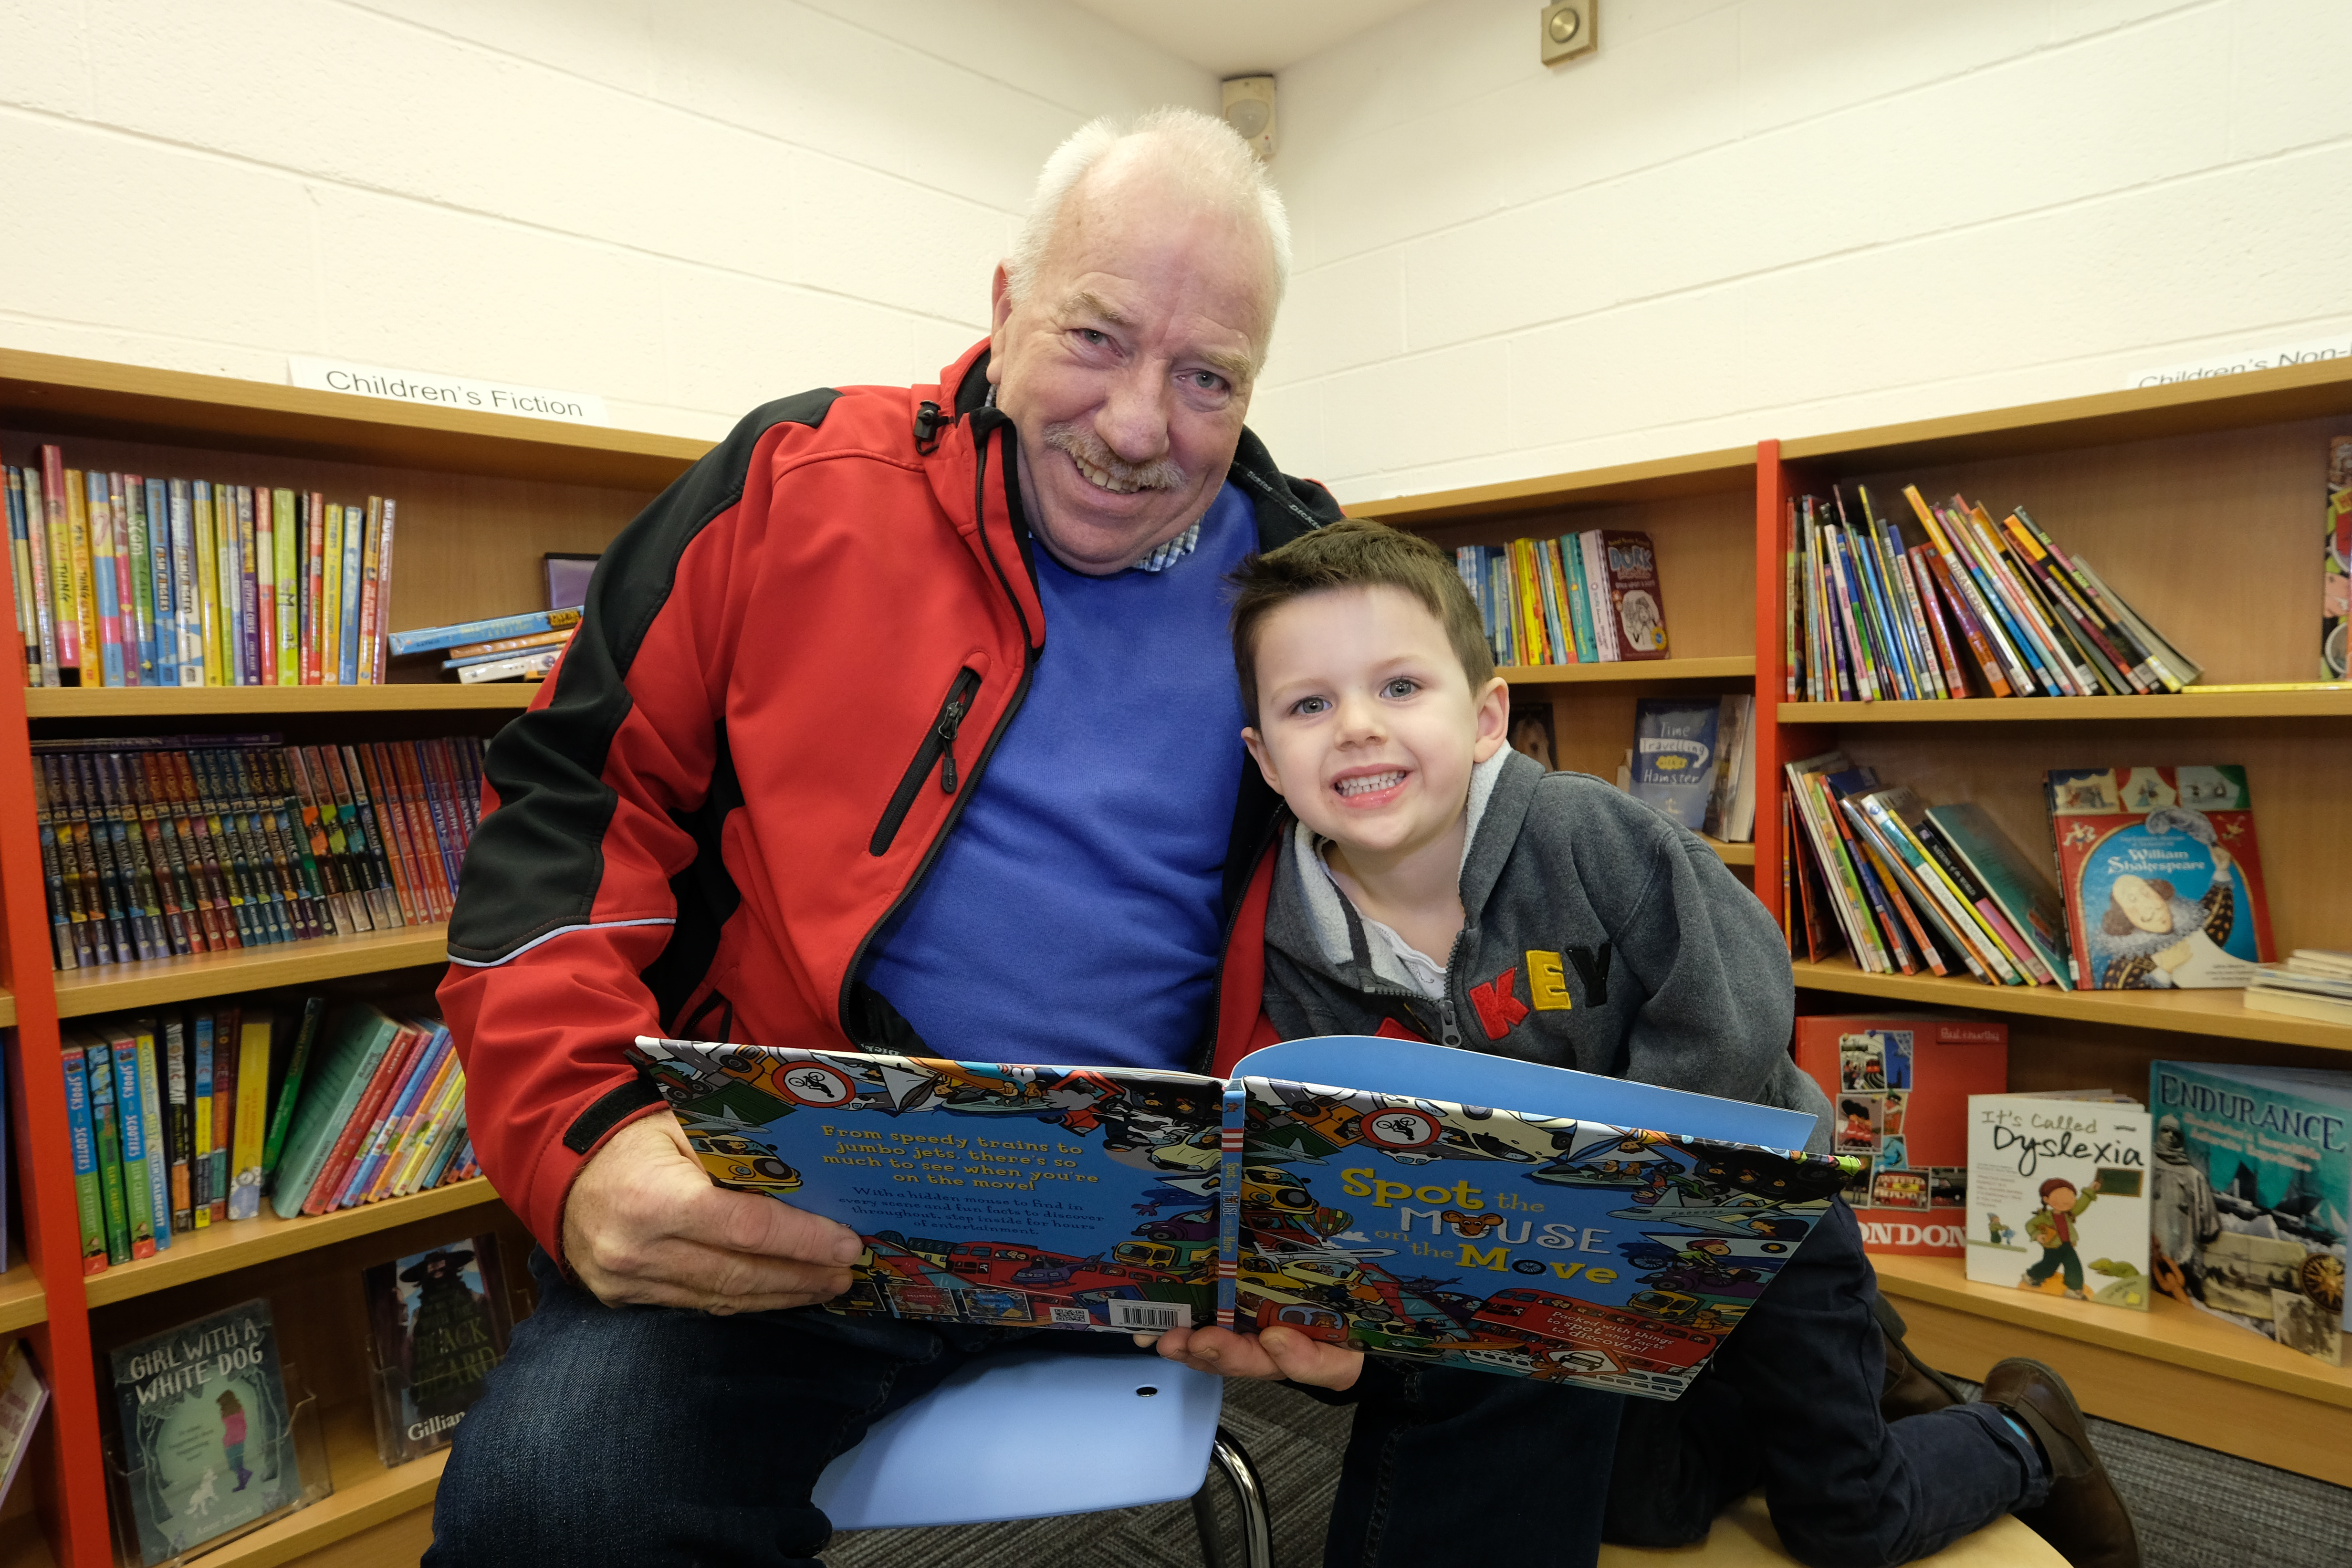 Peter Jones shares a picture book with his 4 year old grandson Seth